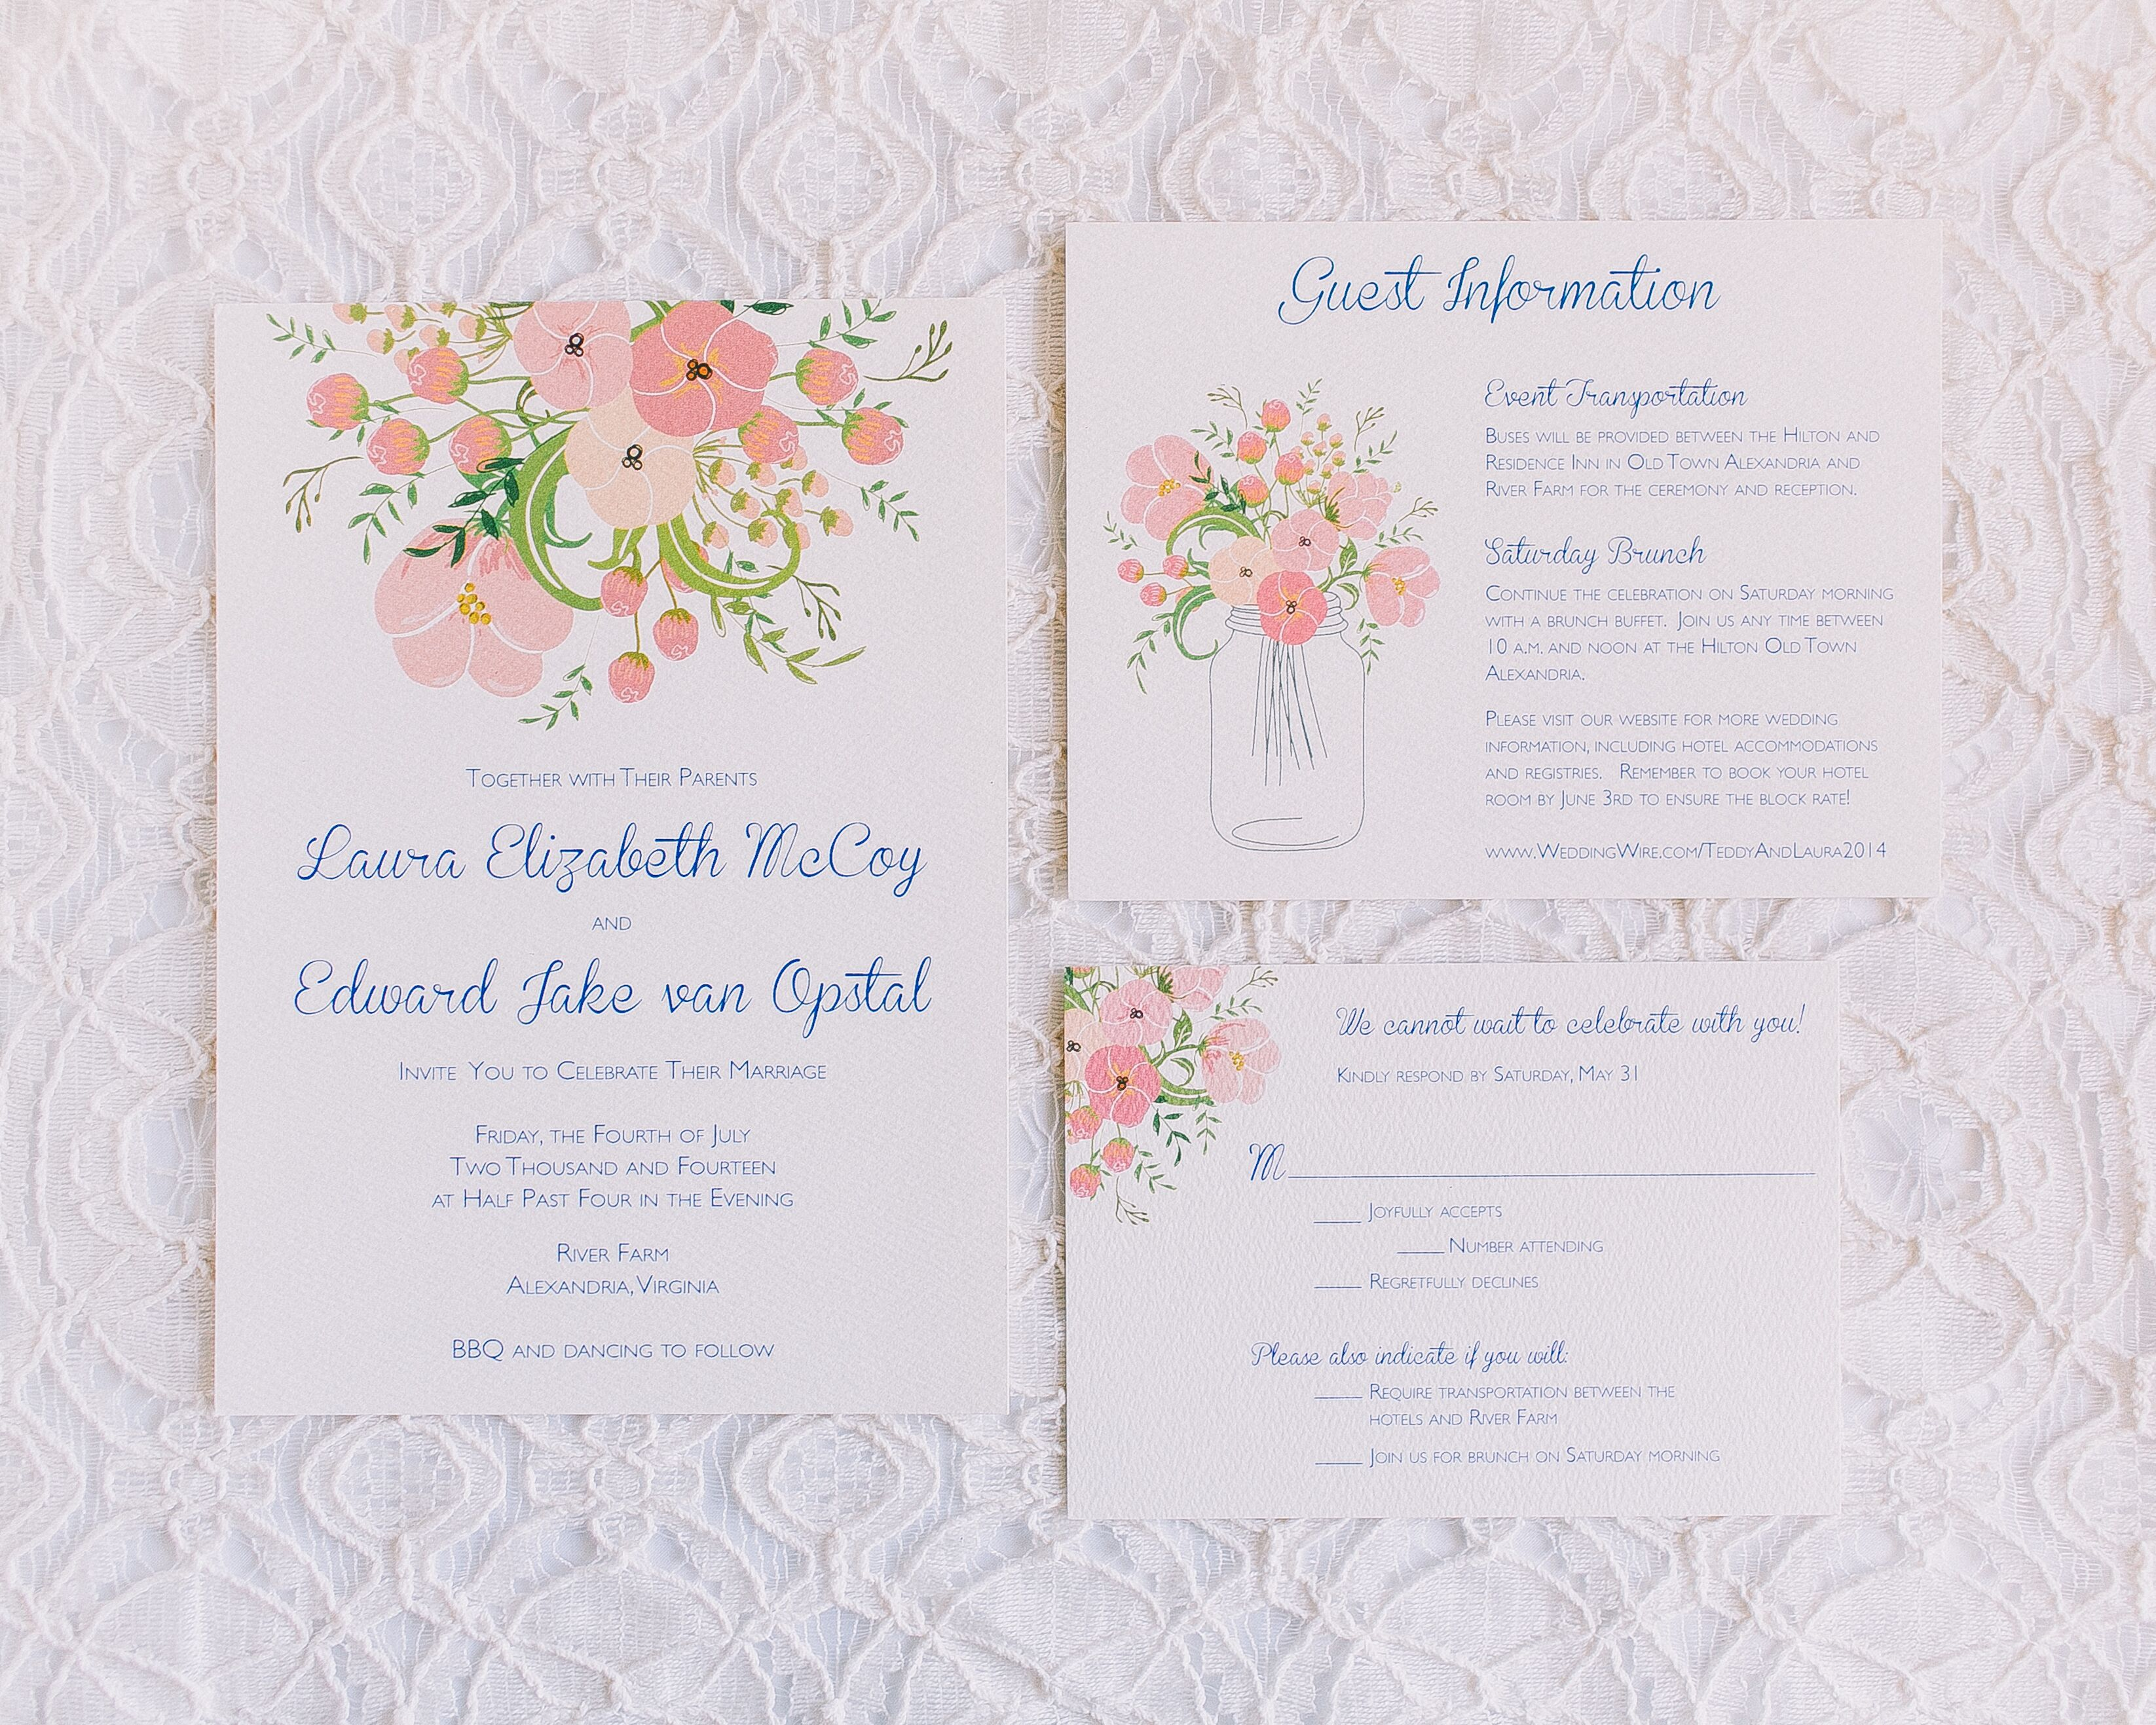 Floral Invitations in Peach, Pink and Powder Blue